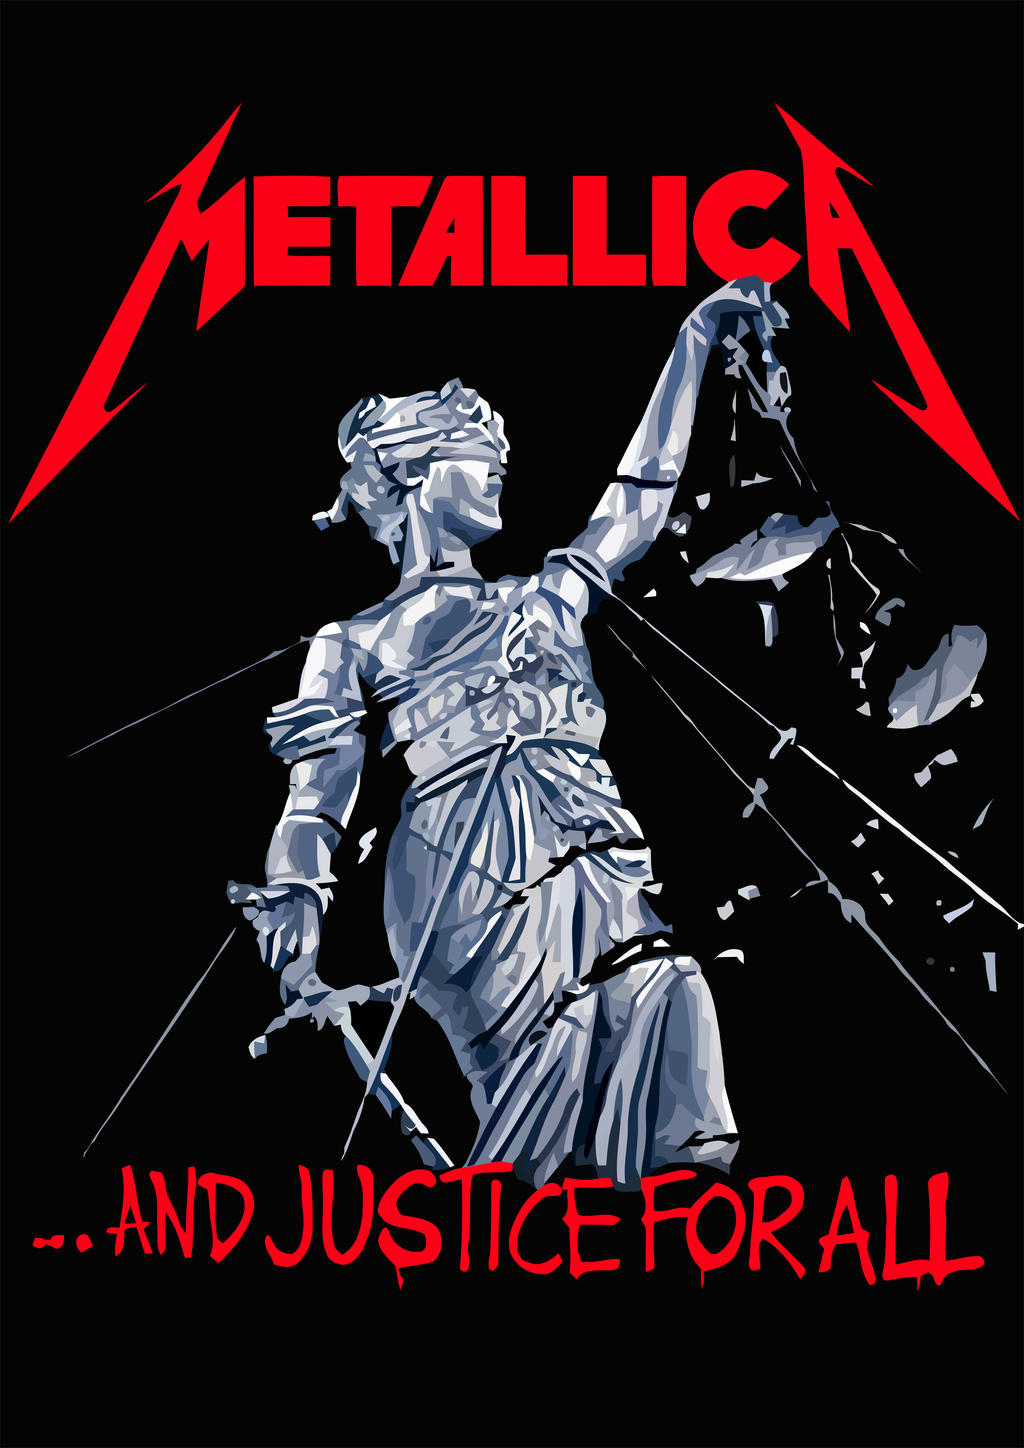 MetallicA - ...And Justice for All by croatian-crusader on ...